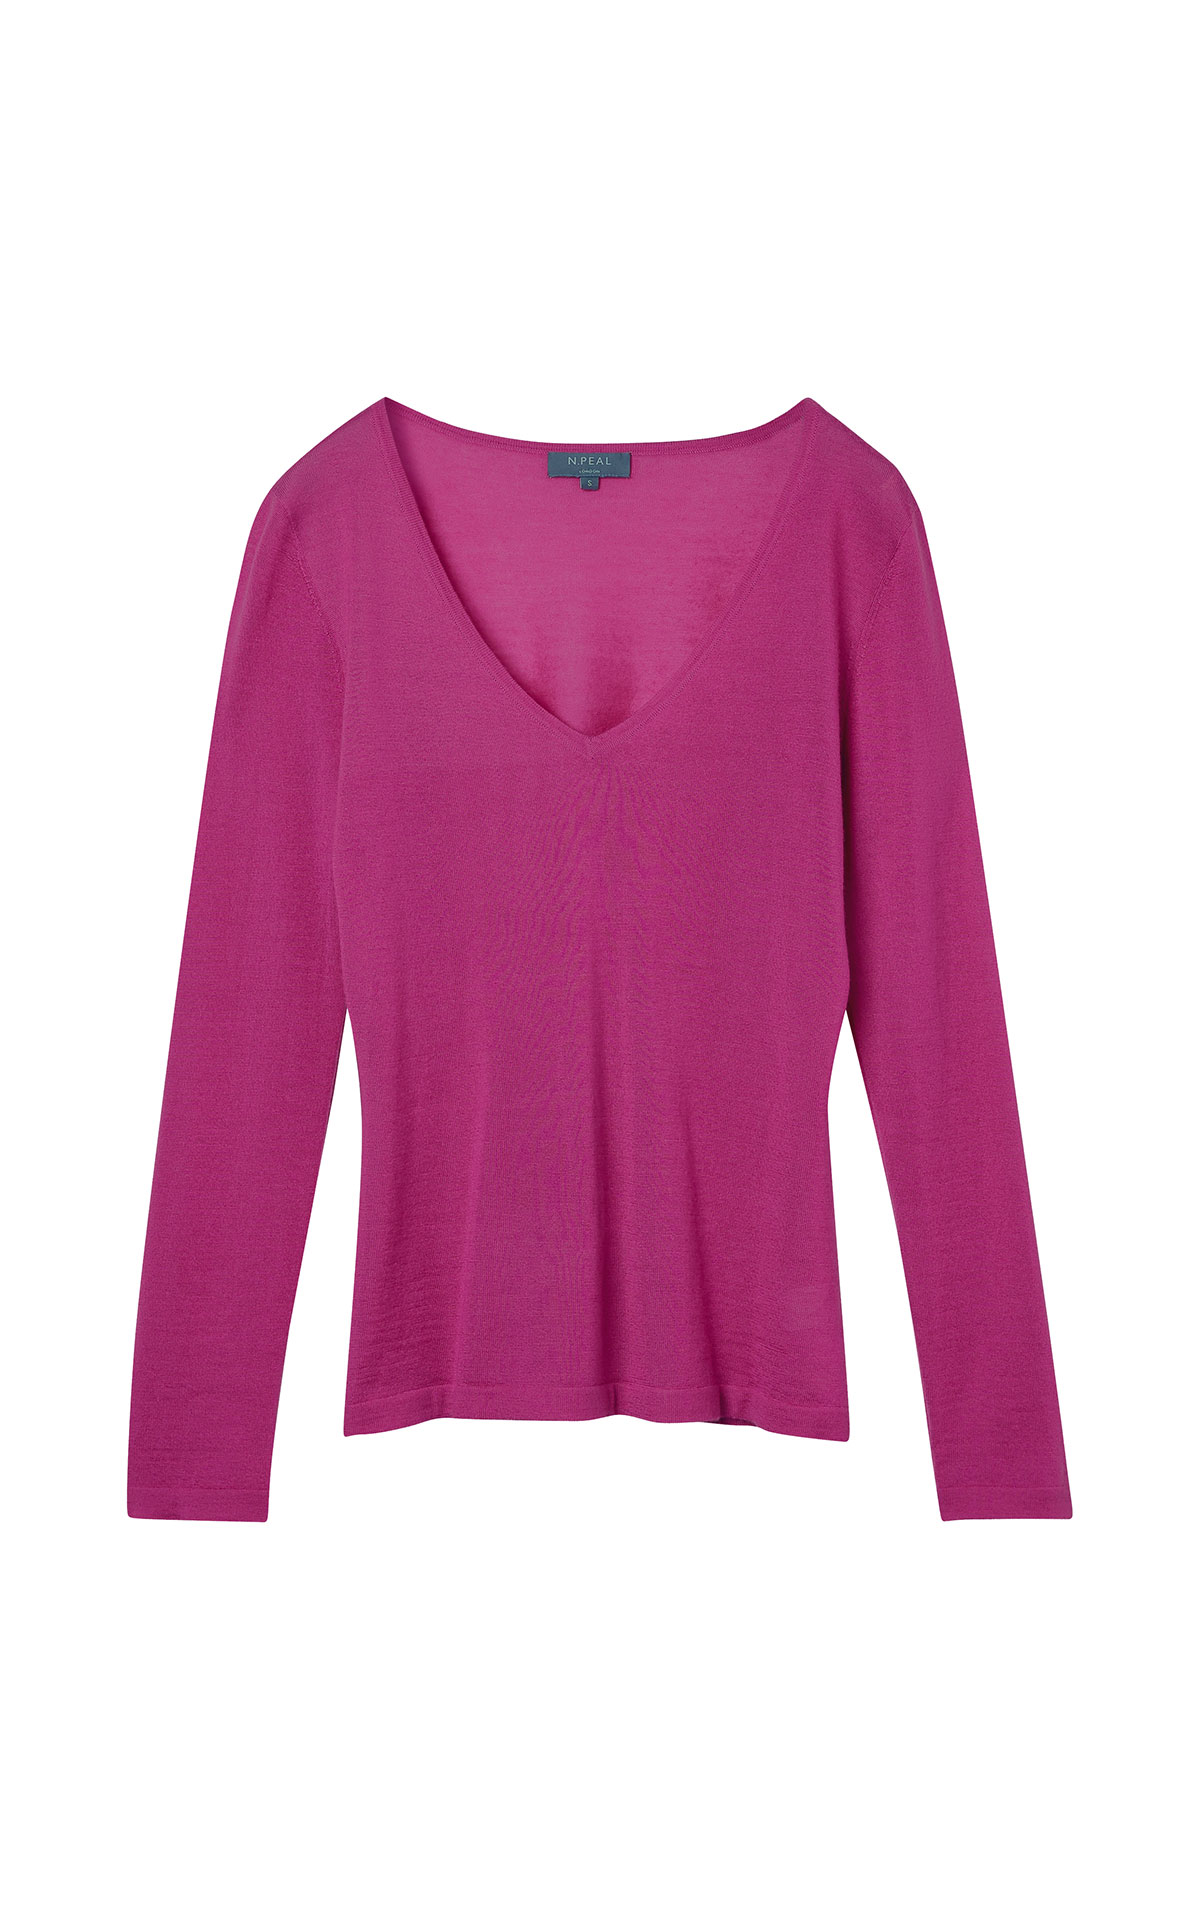 N. Peal SF v neck sweater purple from Bicester Village